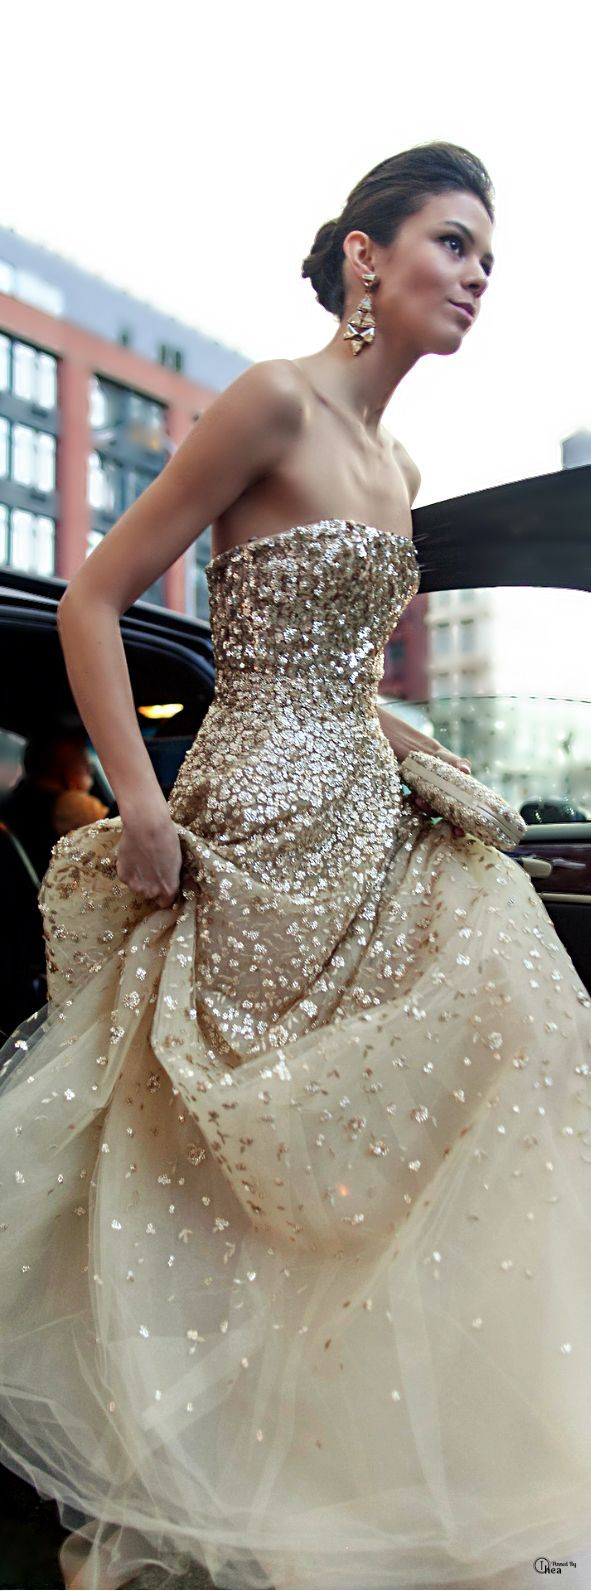 Sparkle: stepping out of the car in this sparkle gown - wow!